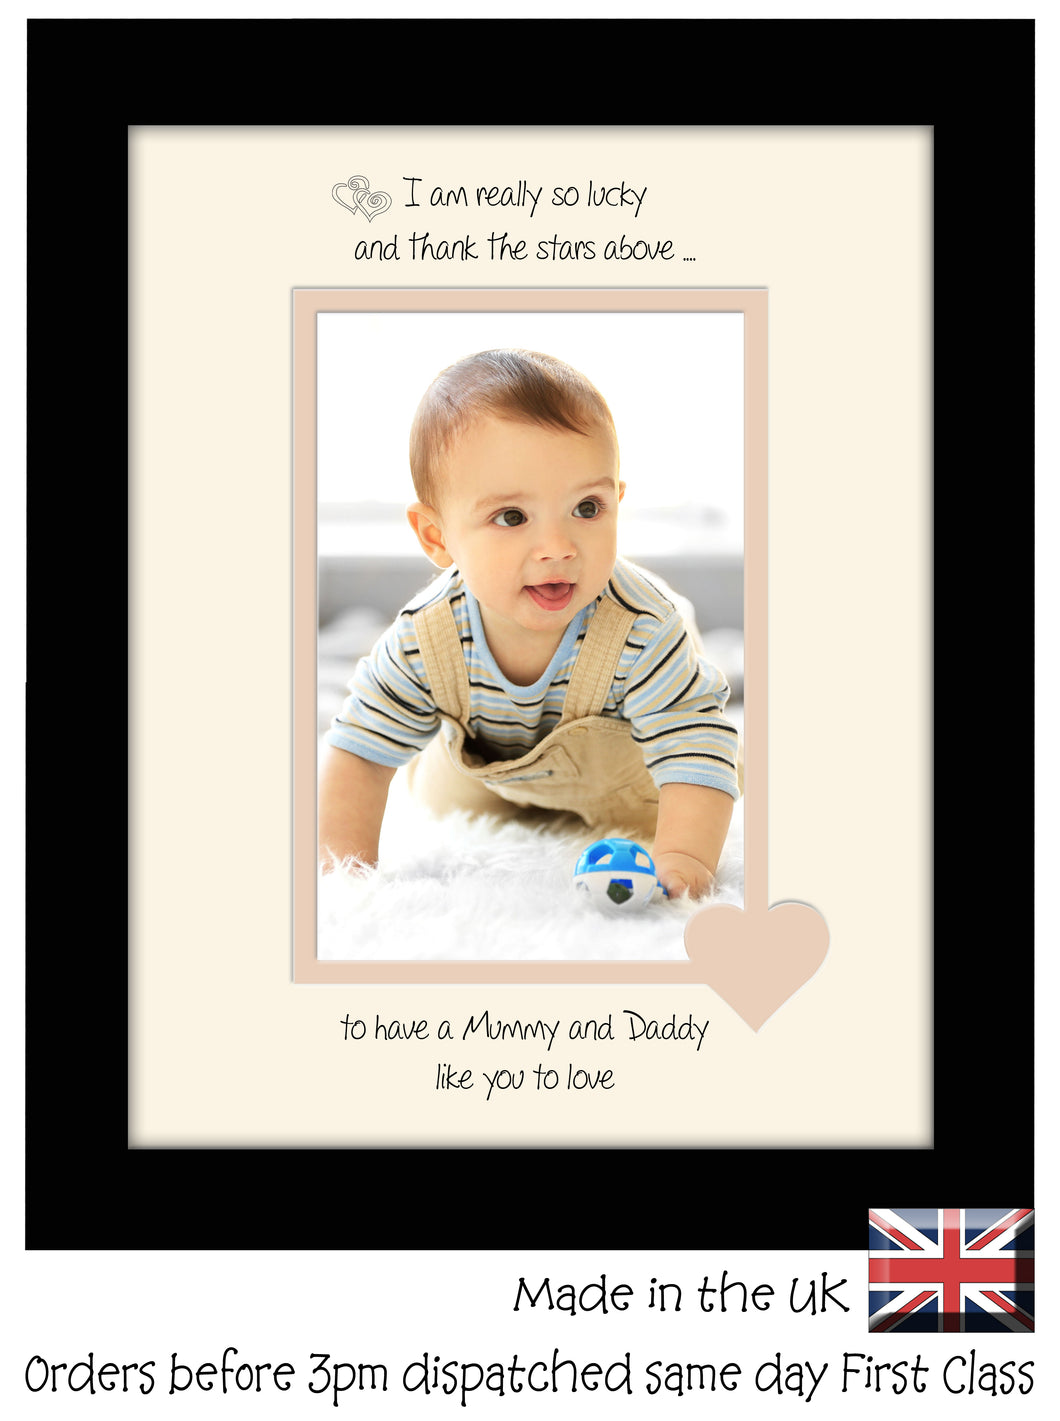 Mummy & Daddy Photo Frame - I Thank the stars Mummy and Daddy Portrait photo frame 6